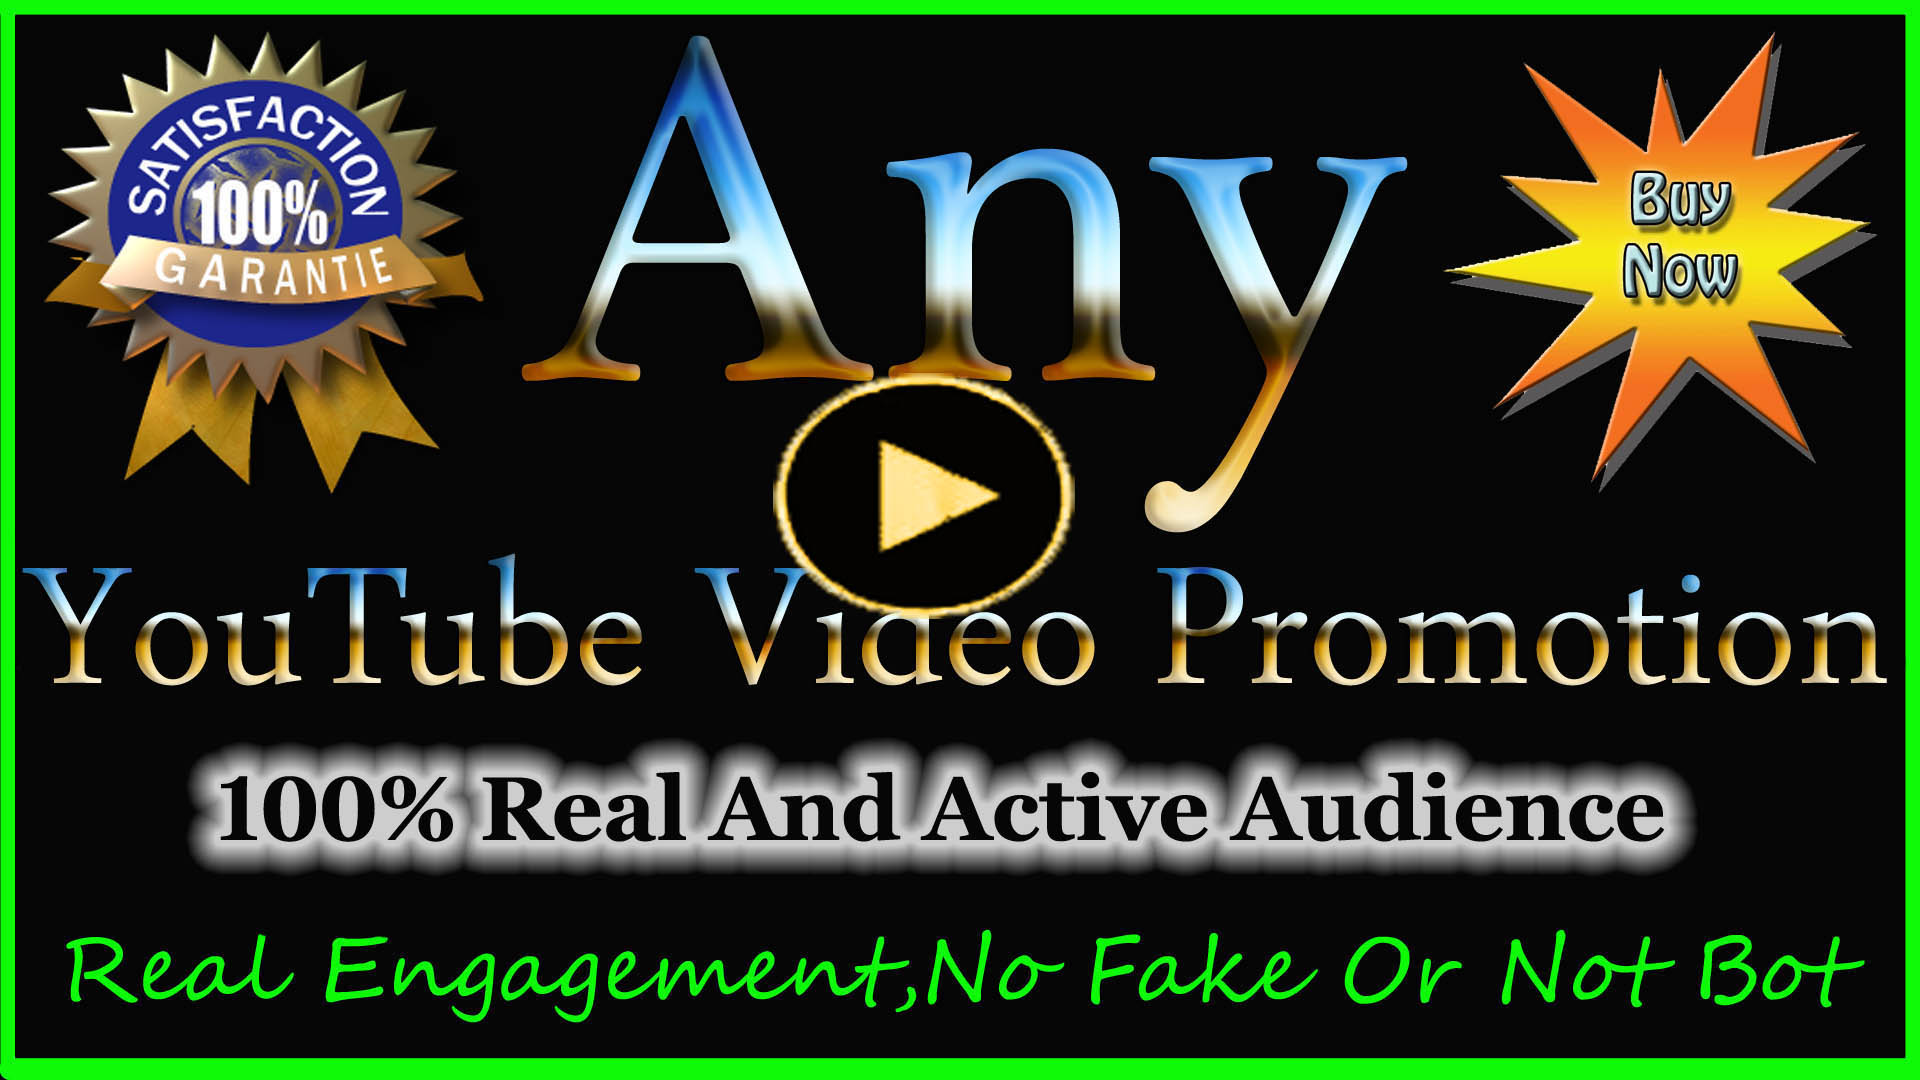 Boost YouTube Video SEO Promotion And Marketing